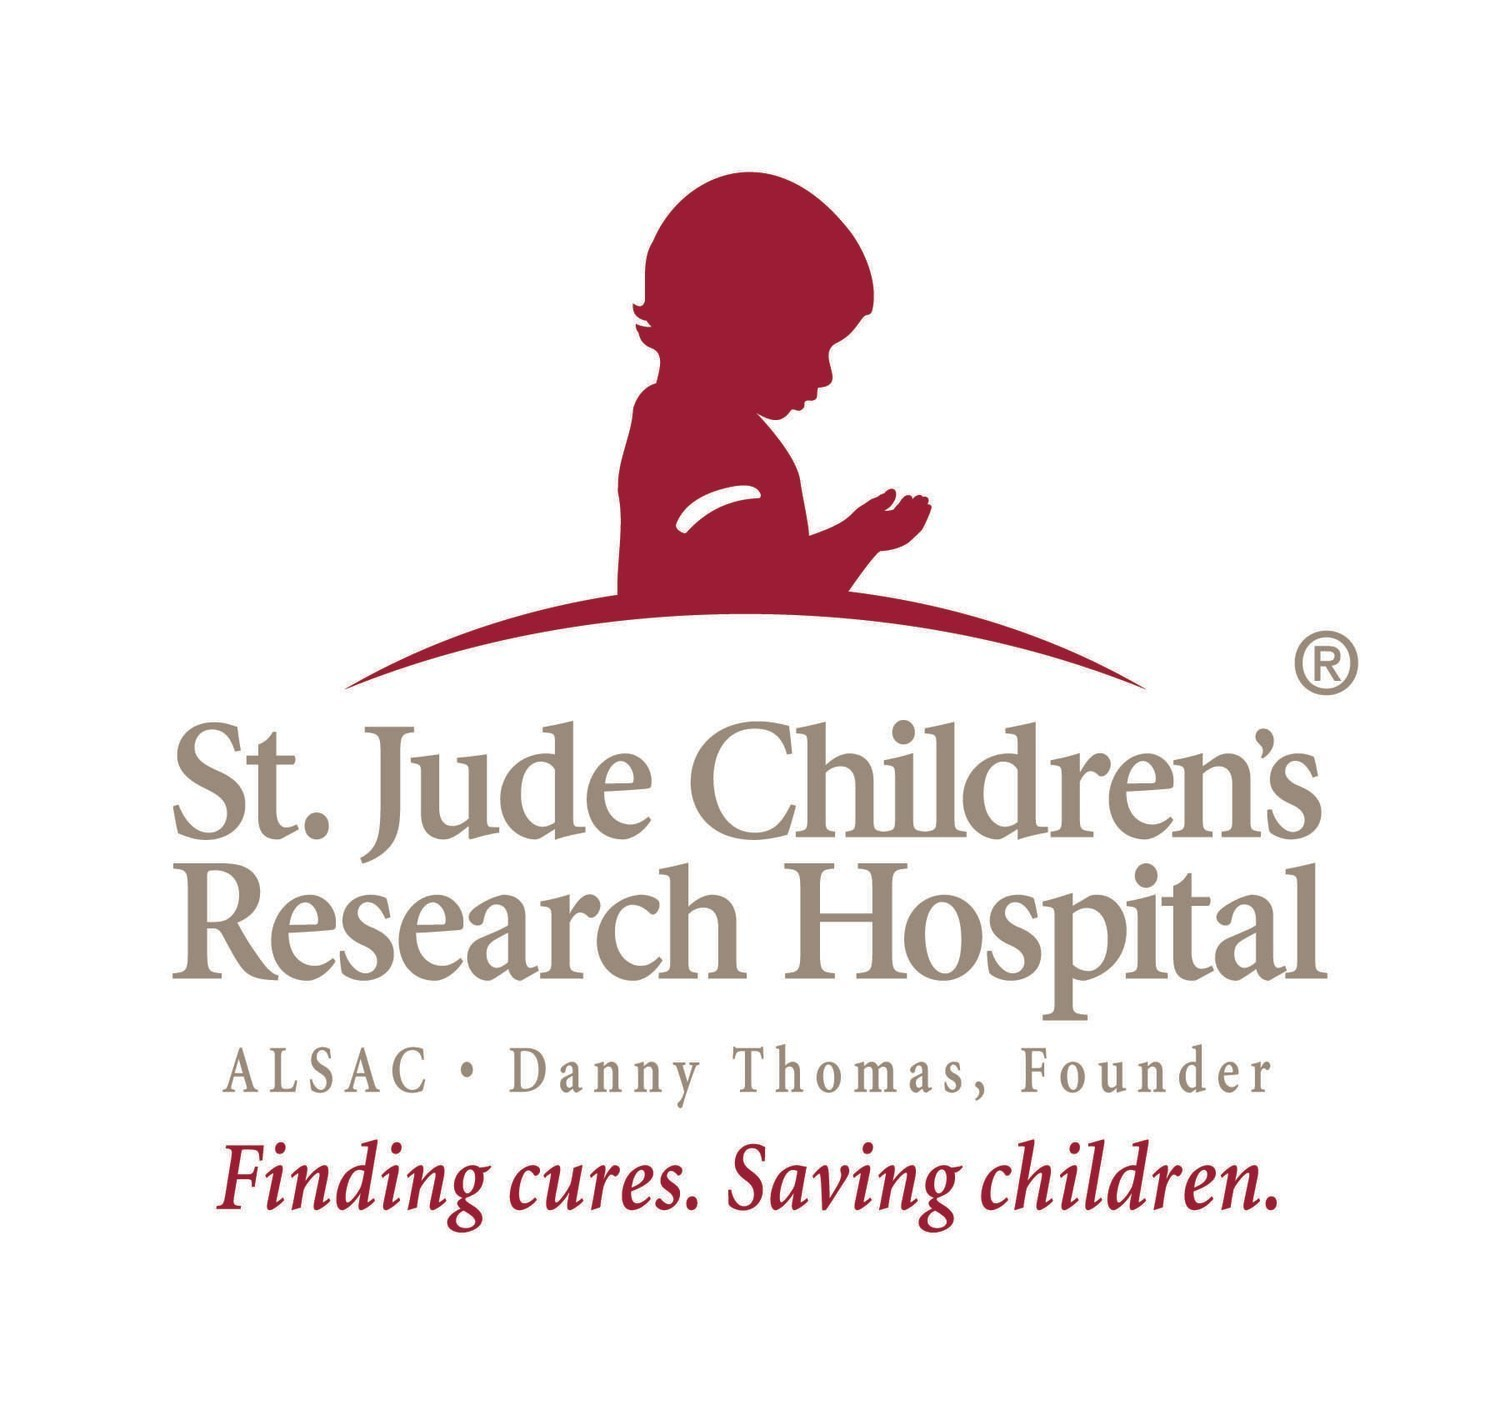 St. Jude Children's Research Hospital is leading the way the world understands, treats and defeats childhood cancer and other life-threatening diseases. It is the only National Cancer Institute-designated Comprehensive Cancer Center devoted solely to children. Treatments invented at St. Jude have helped push the overall childhood cancer survival rate from 20 percent to 80 percent since the hospital opened more than 50 years ago. Join the St. Jude mission by visiting stjude.org.